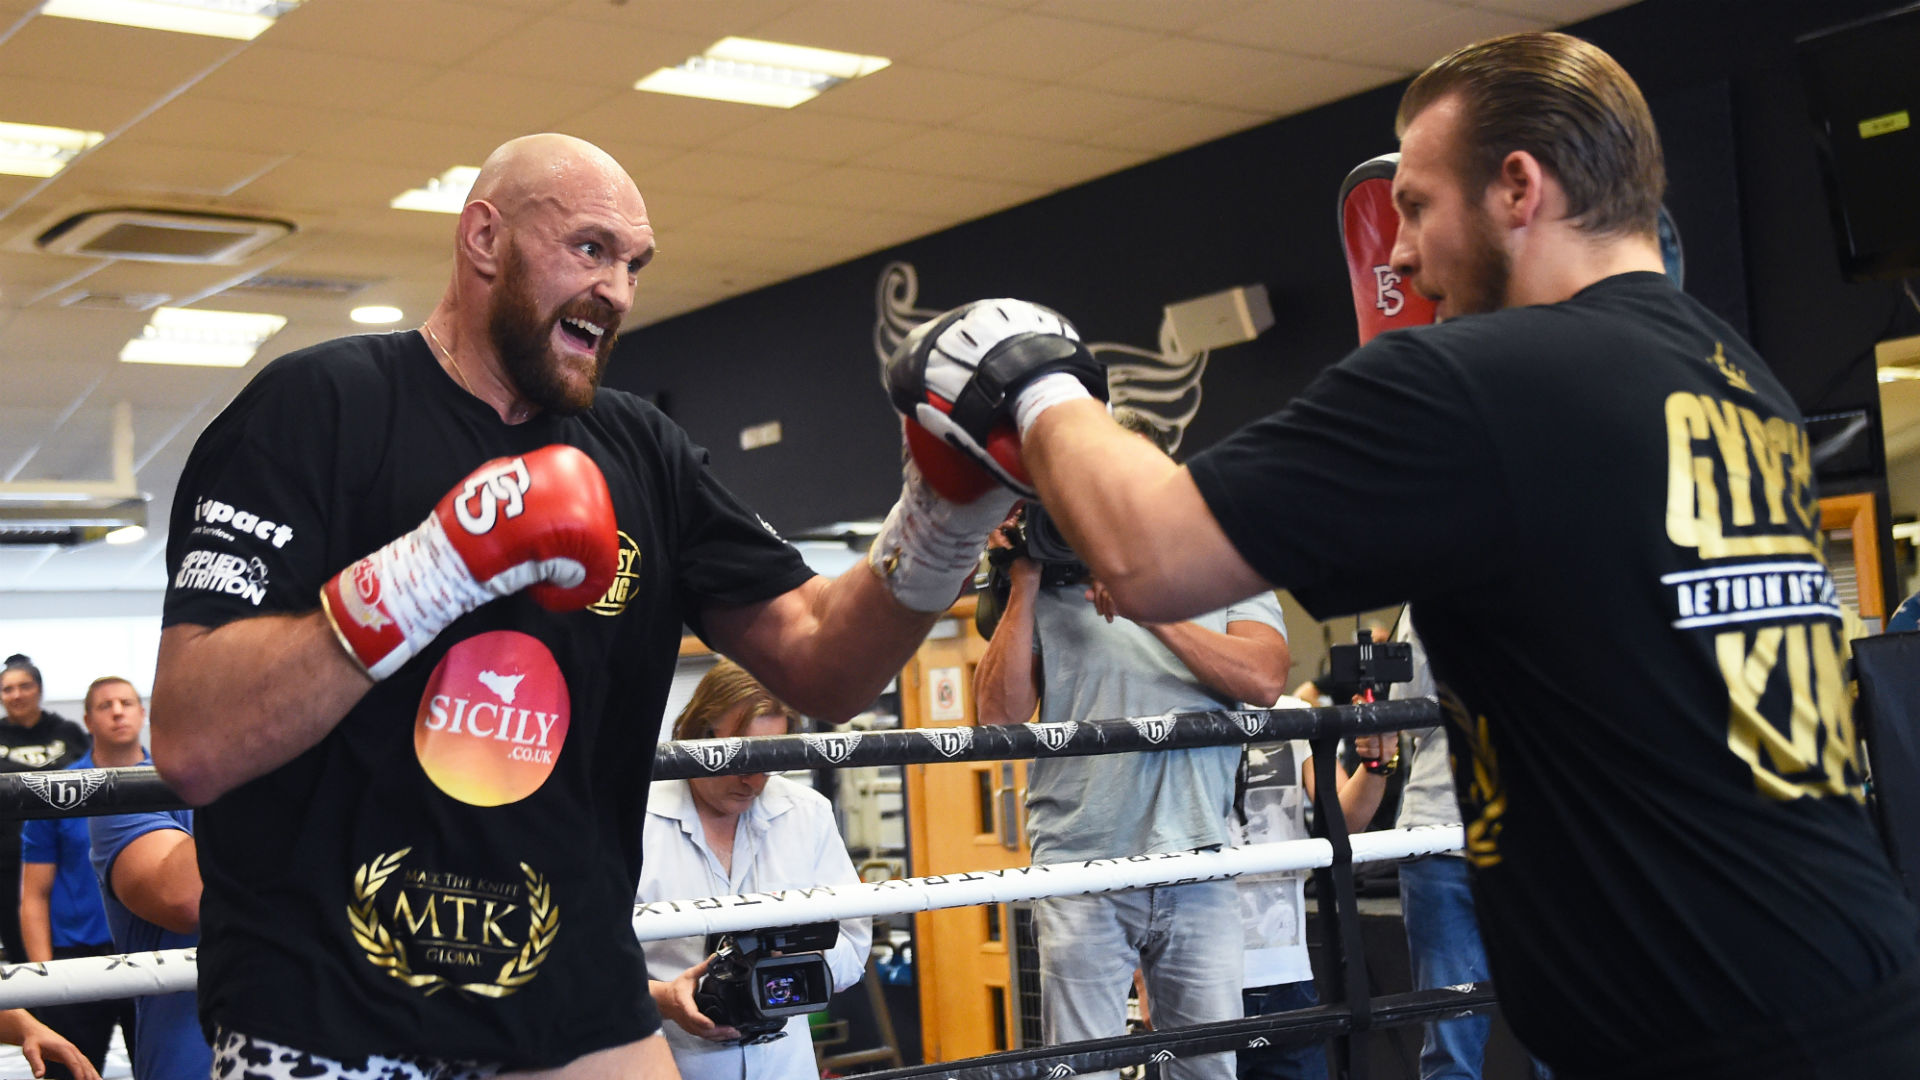 Tyson Fury and Deontay Wilder confrontation expected in Belfast